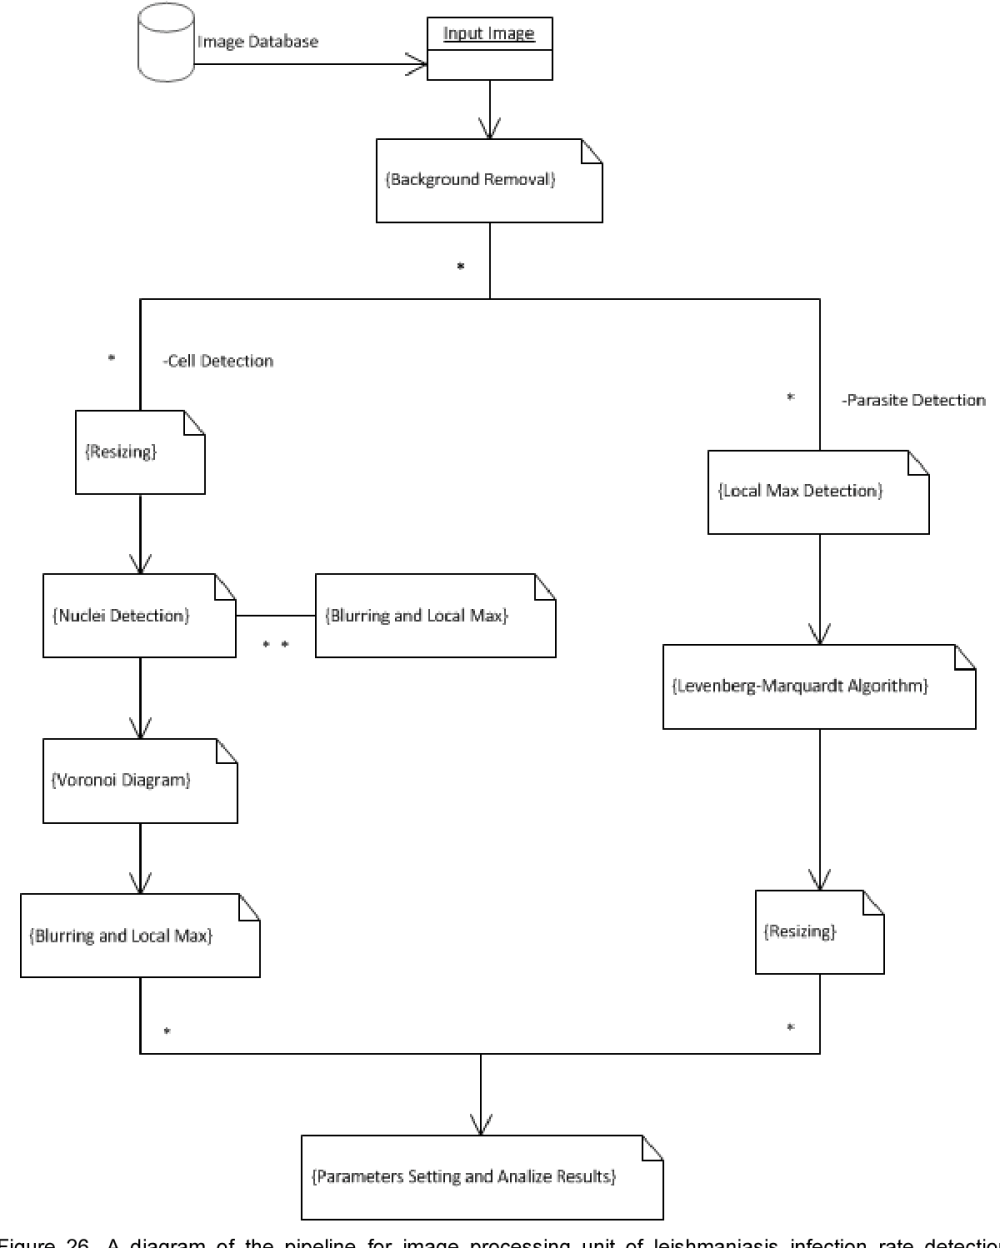 medium resolution of a diagram of the pipeline for image processing unit of leishmaniasis infection rate